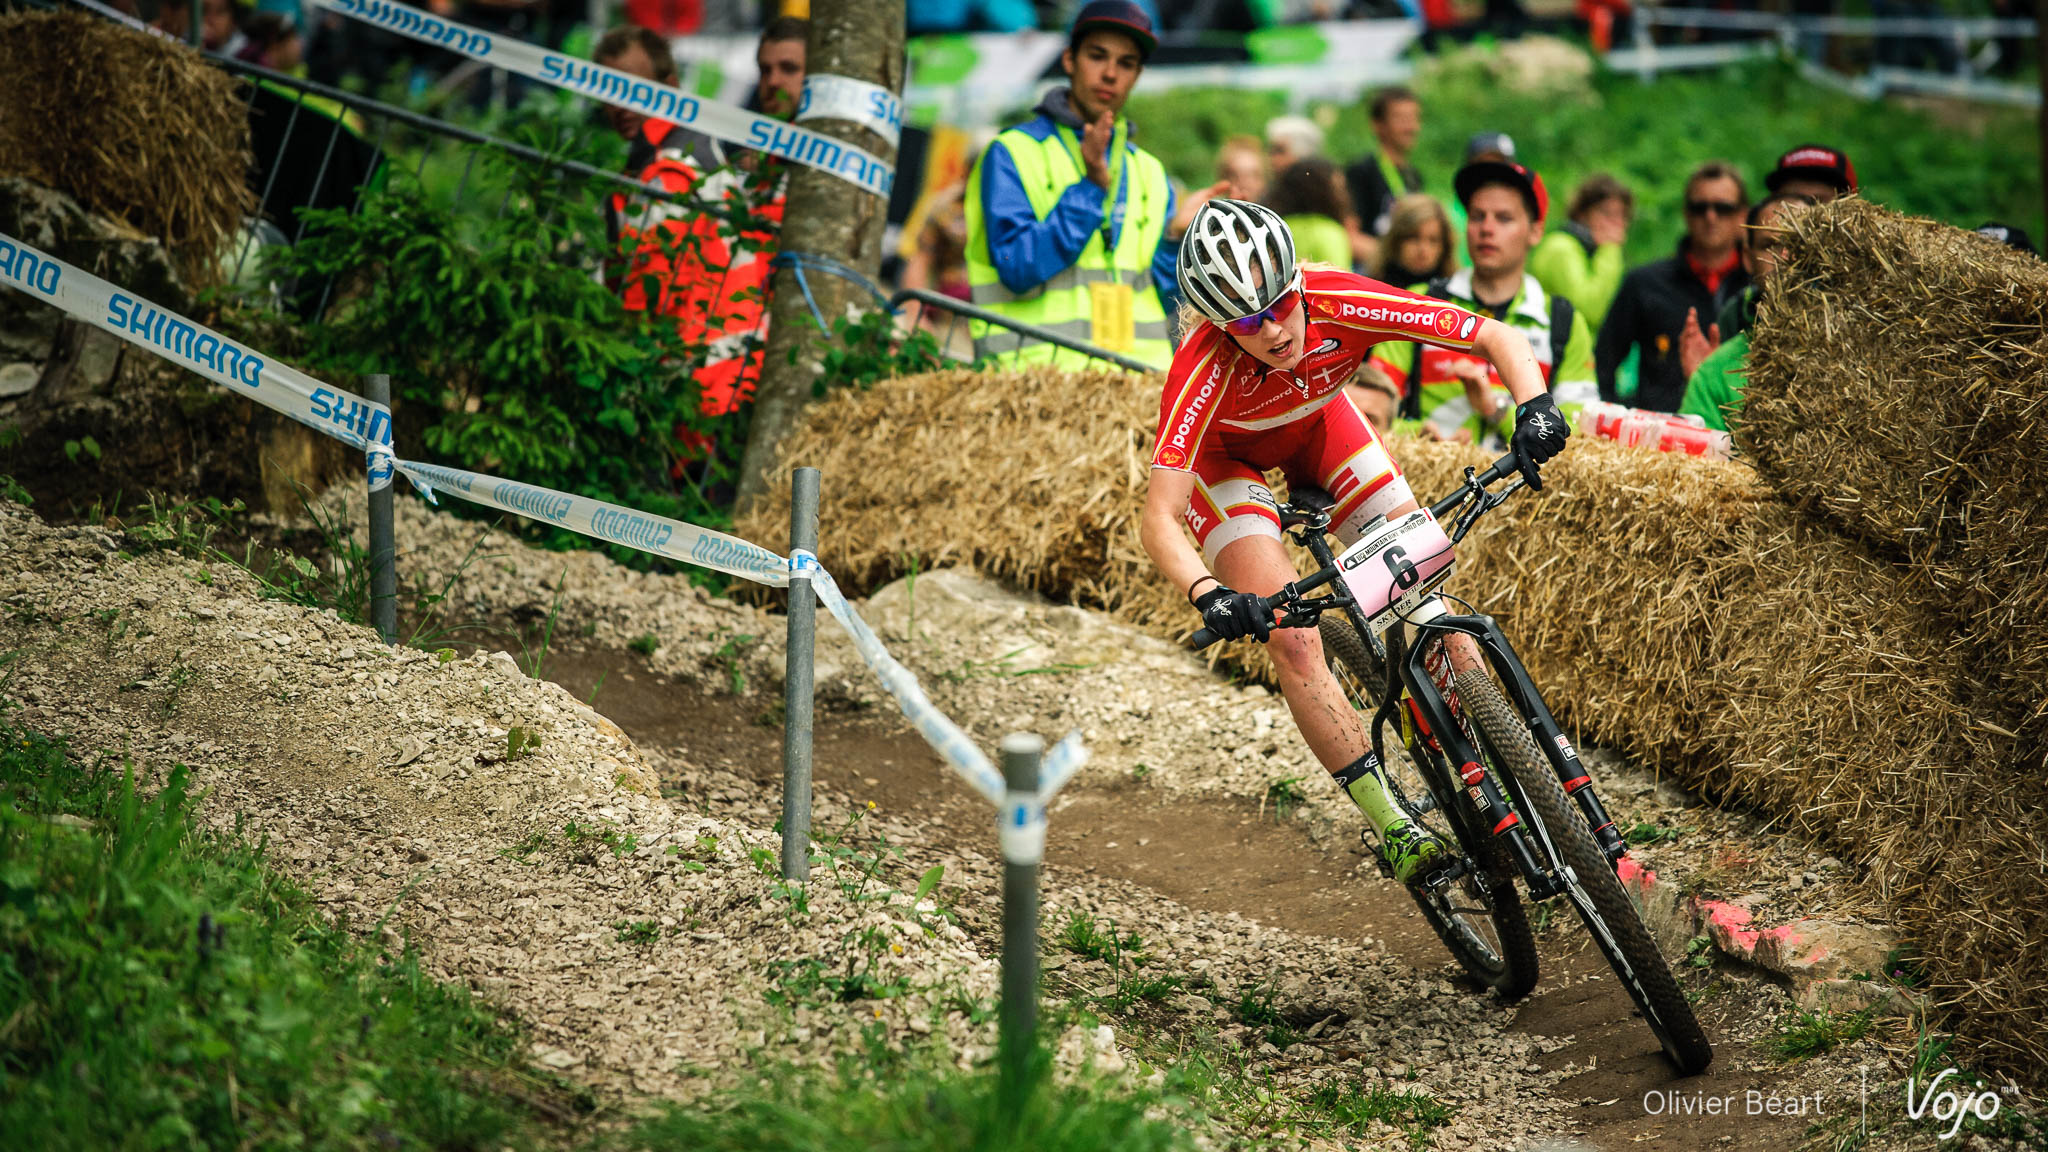 World_Cup_Albstadt_2015_Women_U23_Rissveds_Copyright_OBeart_VojoMag-122